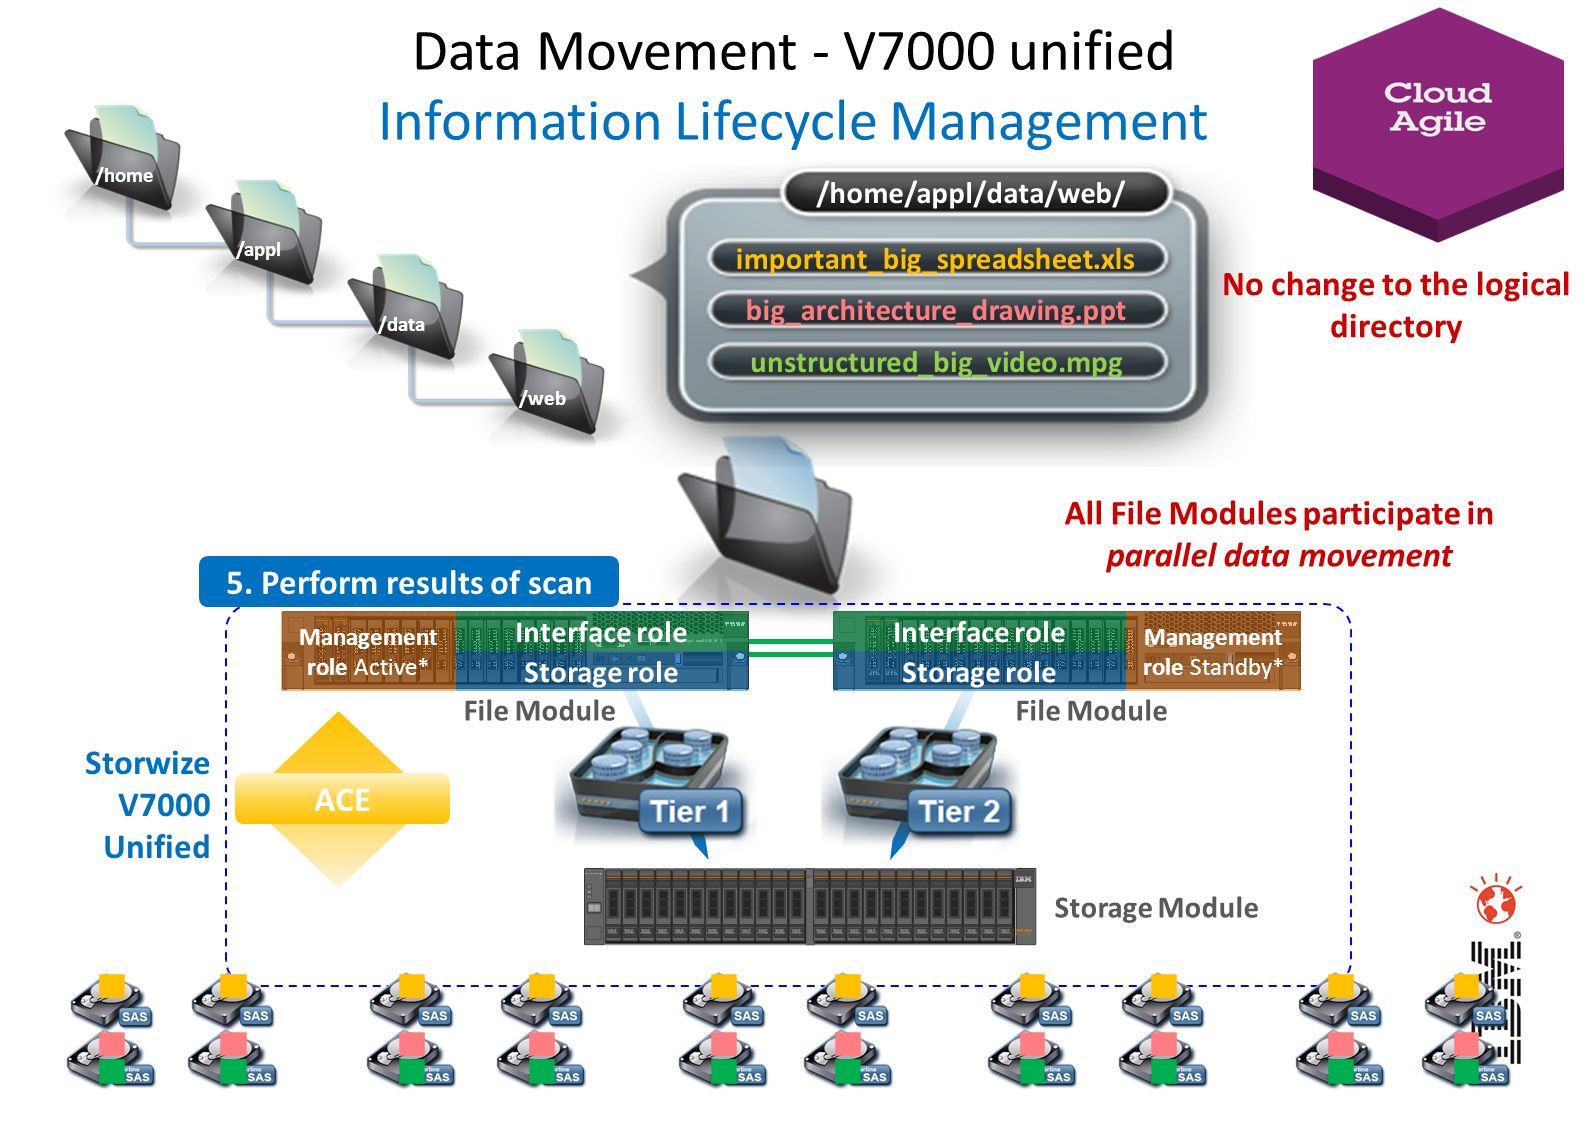 Data Movement - V7000 unified Information Lifecycle Management